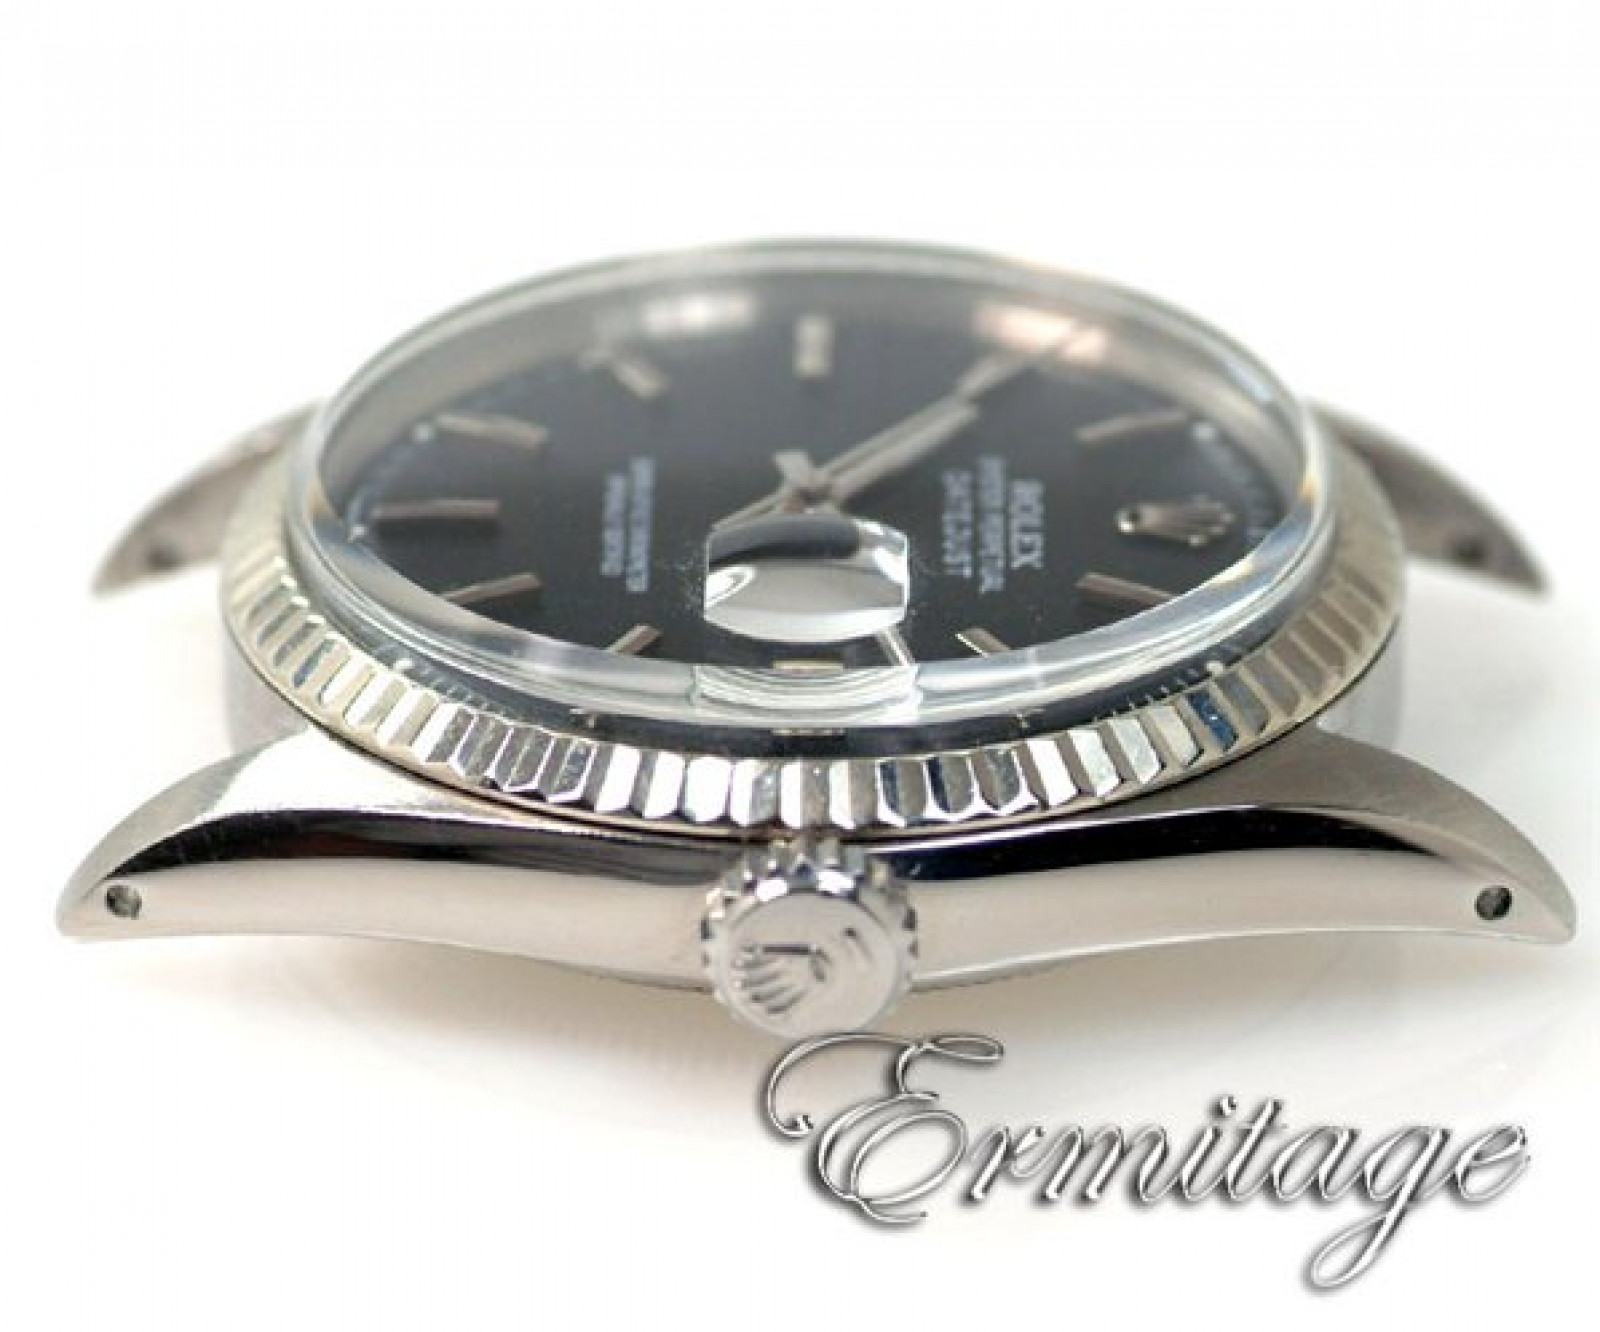 Vintage Rare Rolex Datejust 1601 Steel Year 1966